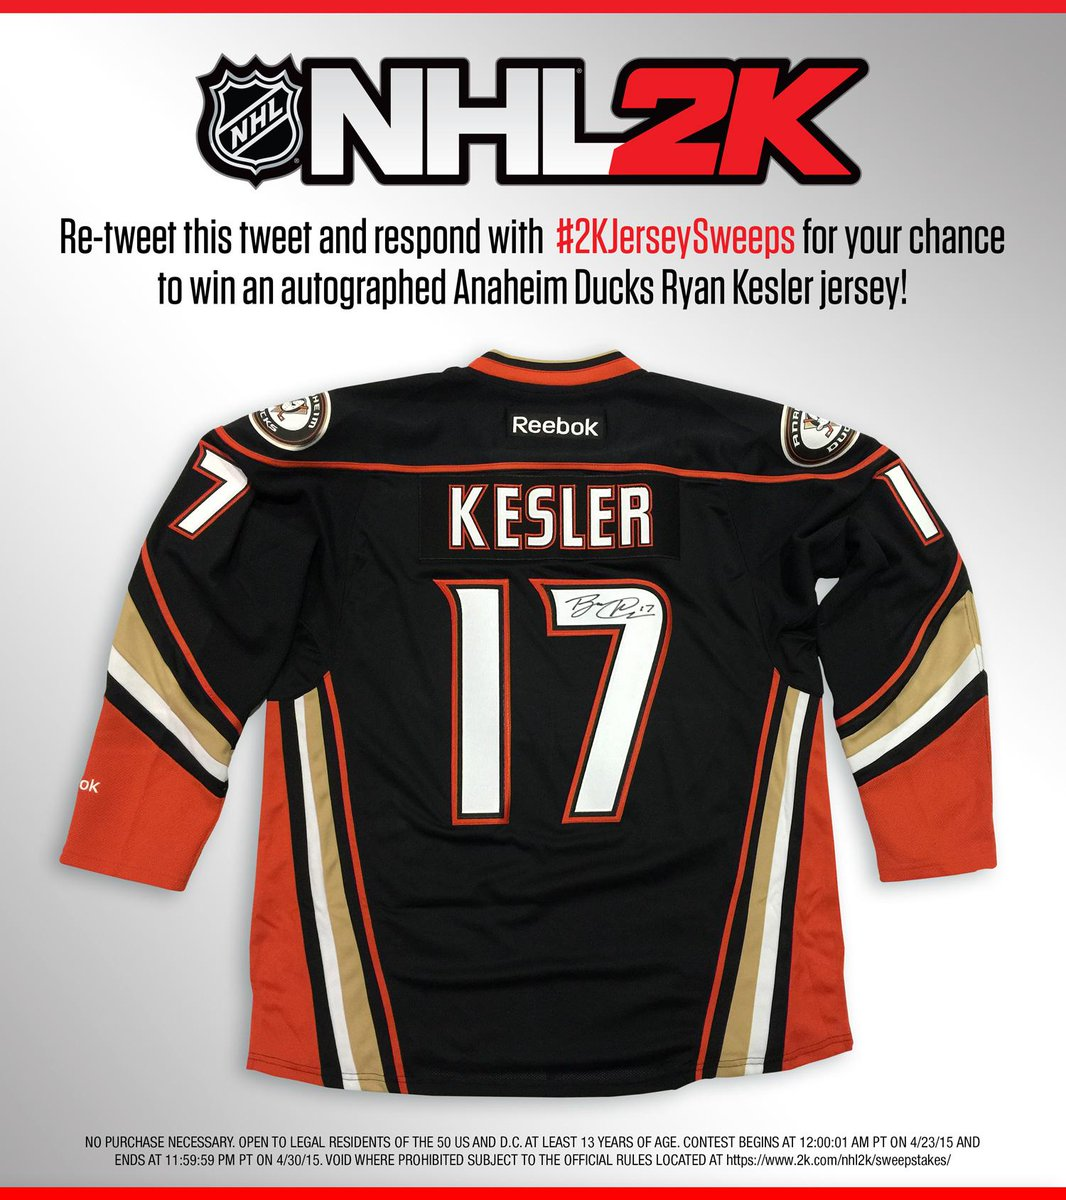 Pick up #NHL2K today for $2.99 from April 23-30! https://t.co/pTlv6EMpDl http://t.co/xNRXxLfYad